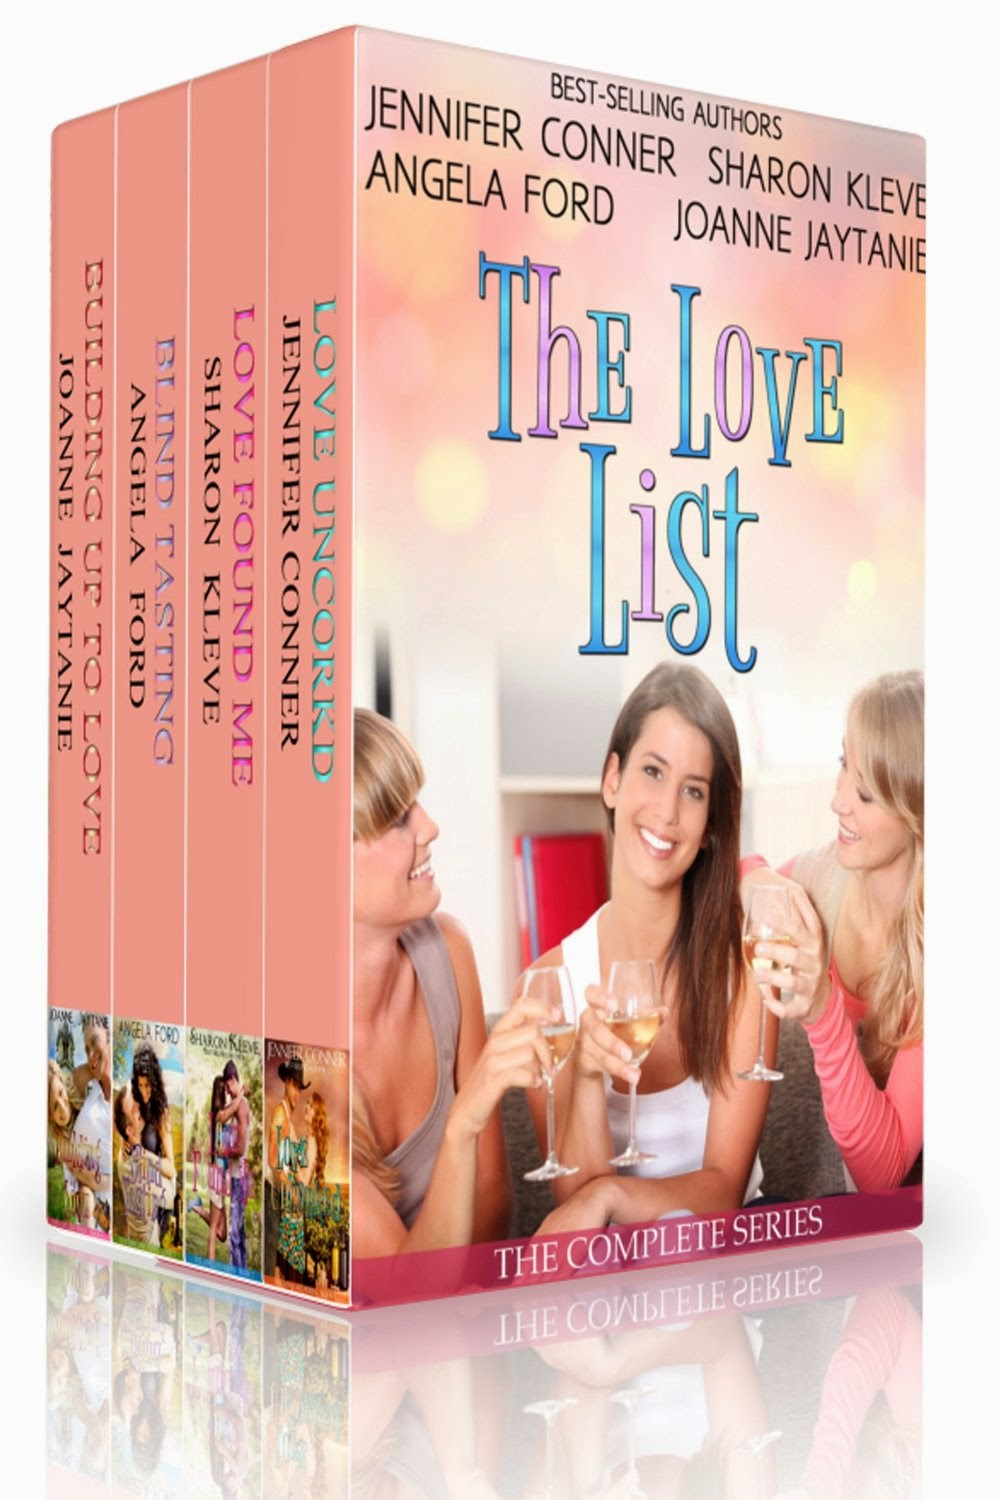 http://www.amazon.com/Love-List-Collection-Uncorked-Building-ebook/dp/B00OD4YPZU/ref=sr_1_7?s=books&ie=UTF8&qid=1421614182&sr=1-7&keywords=sharon+kleve